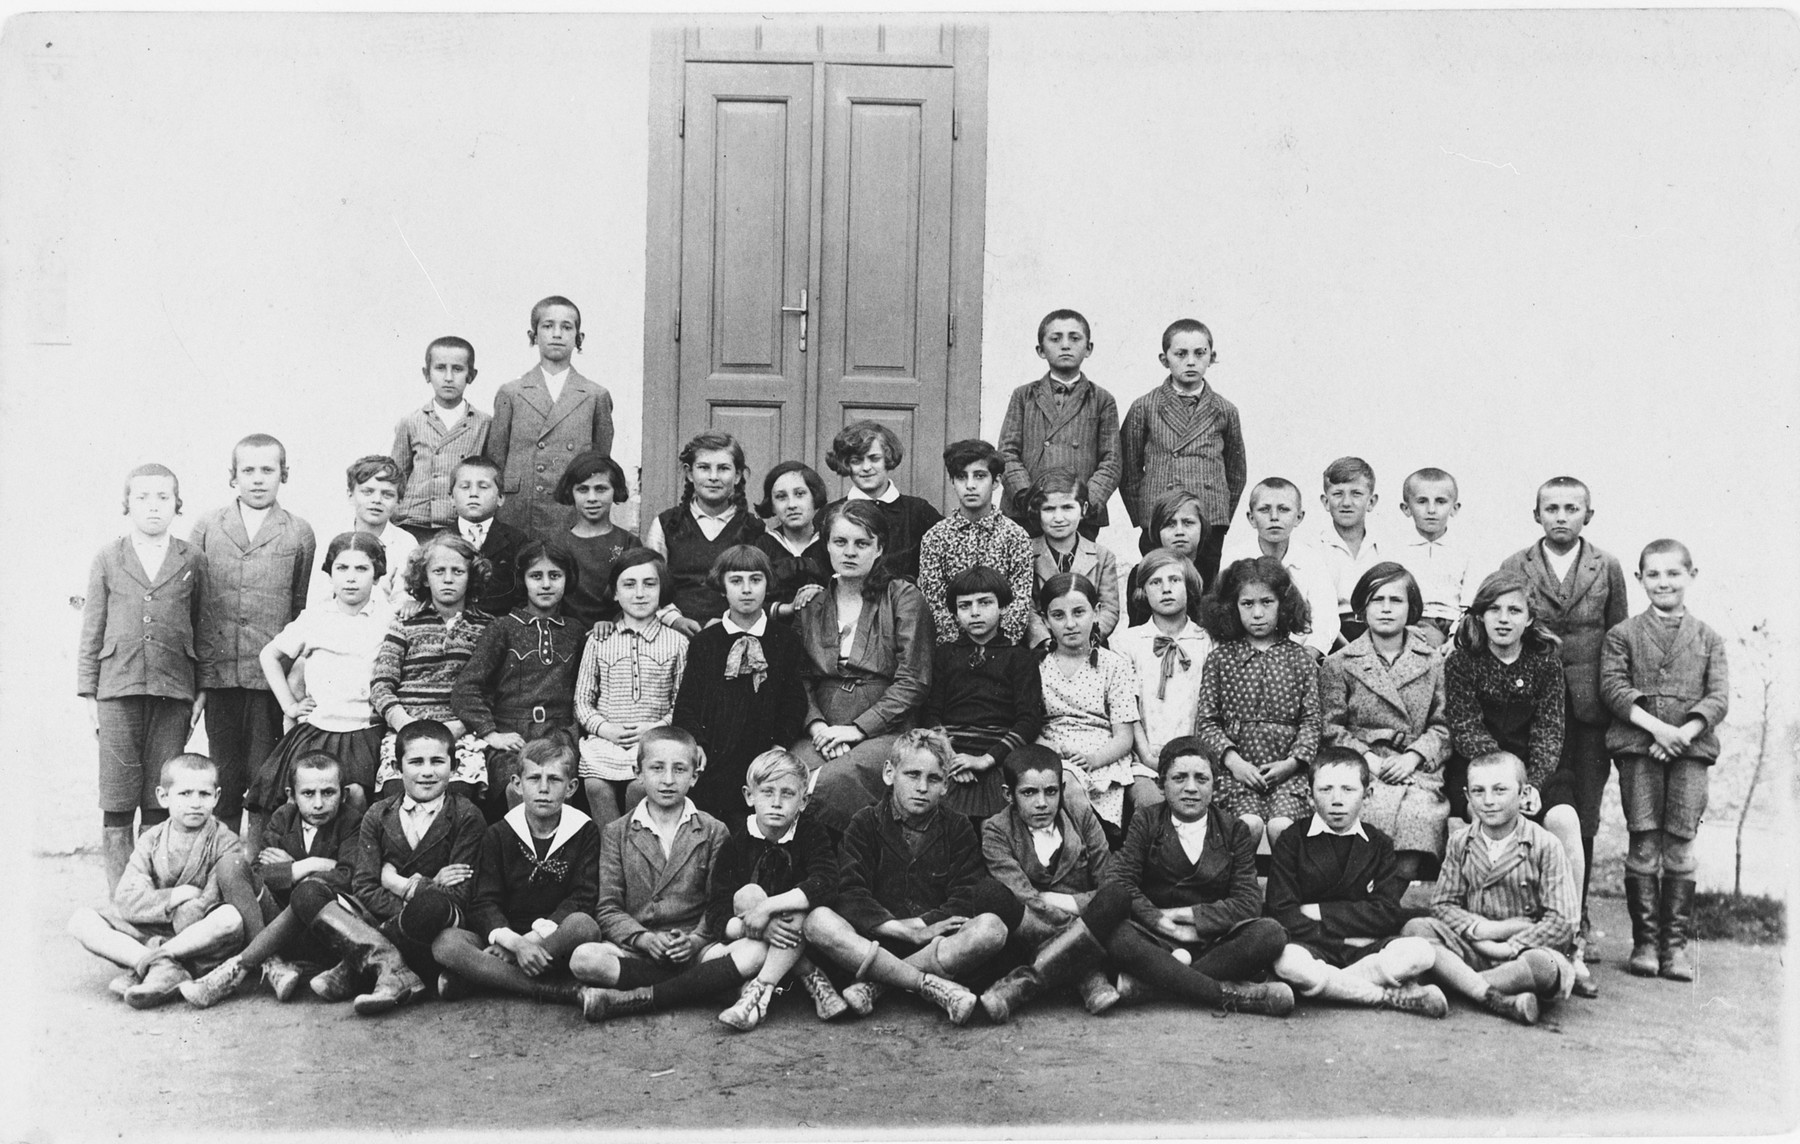 Group portrait of Jewish and non-Jewish children in a public school in Tacovo.  Among those pictured is Goldie Berger.